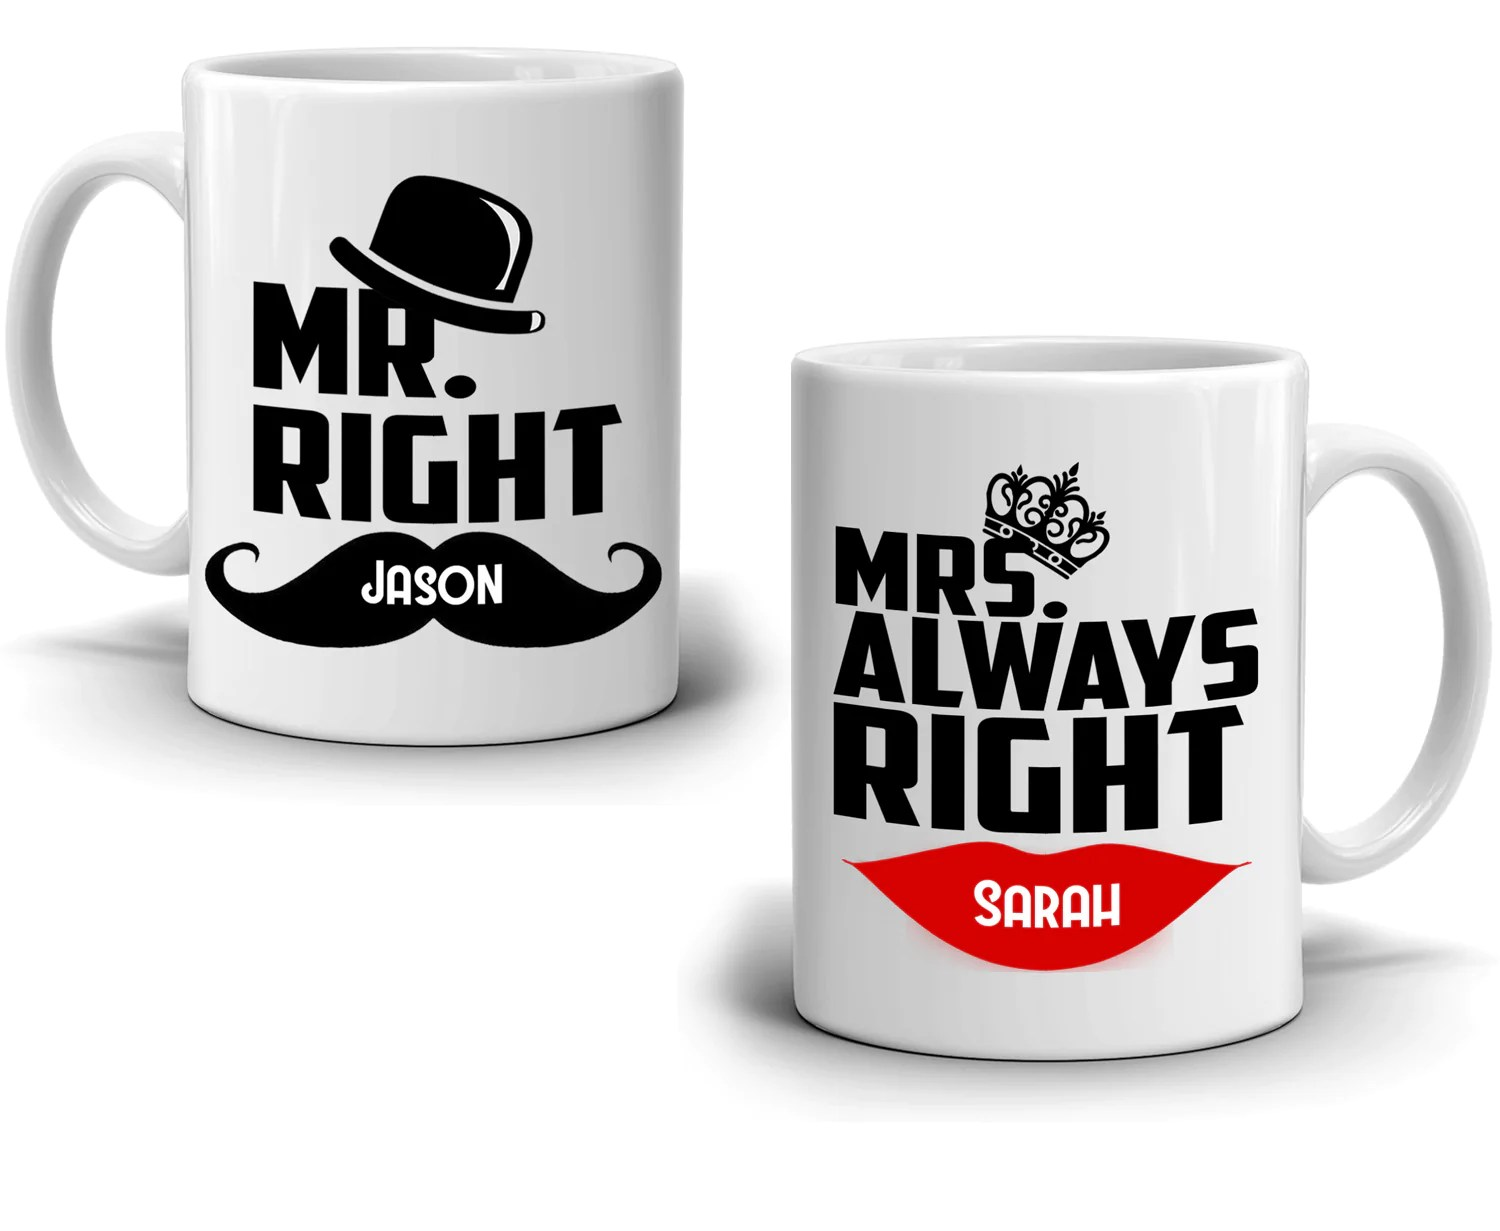 Fullsize Of Coffe Mug Sets